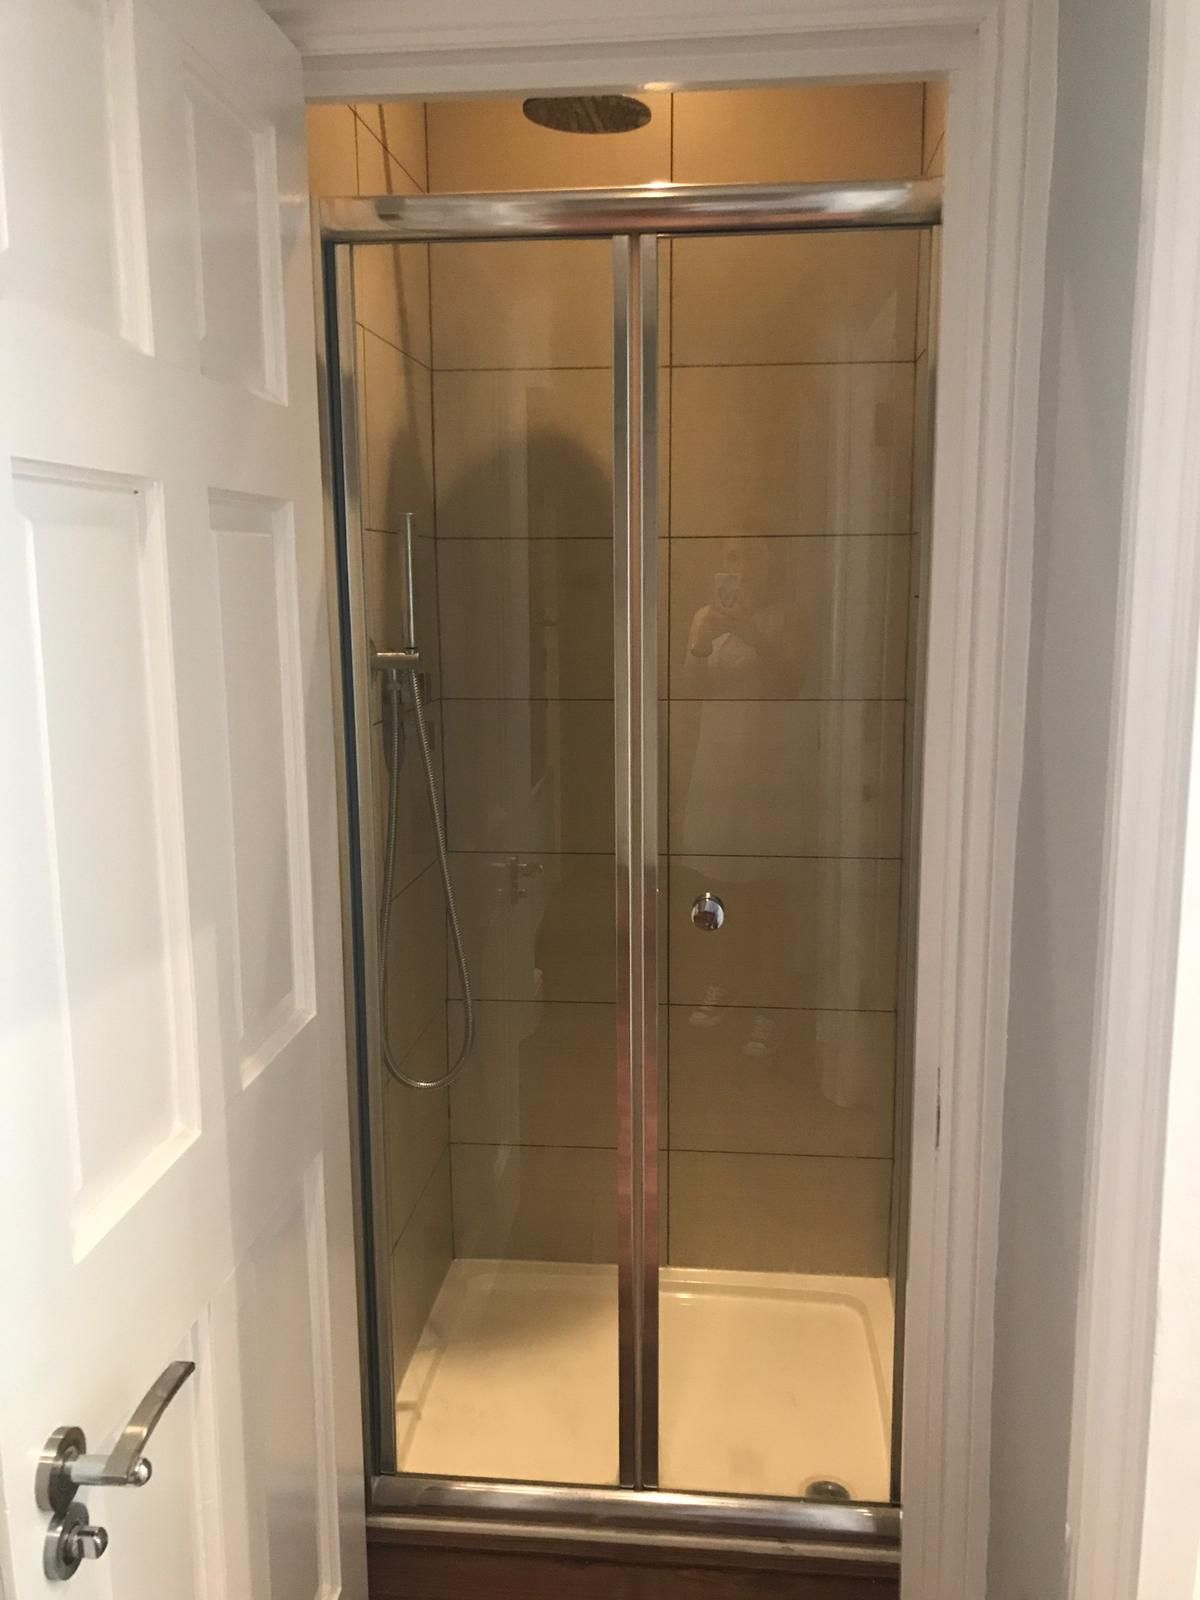 2 bedroom flat flat/apartment To Let in London - Separate shower